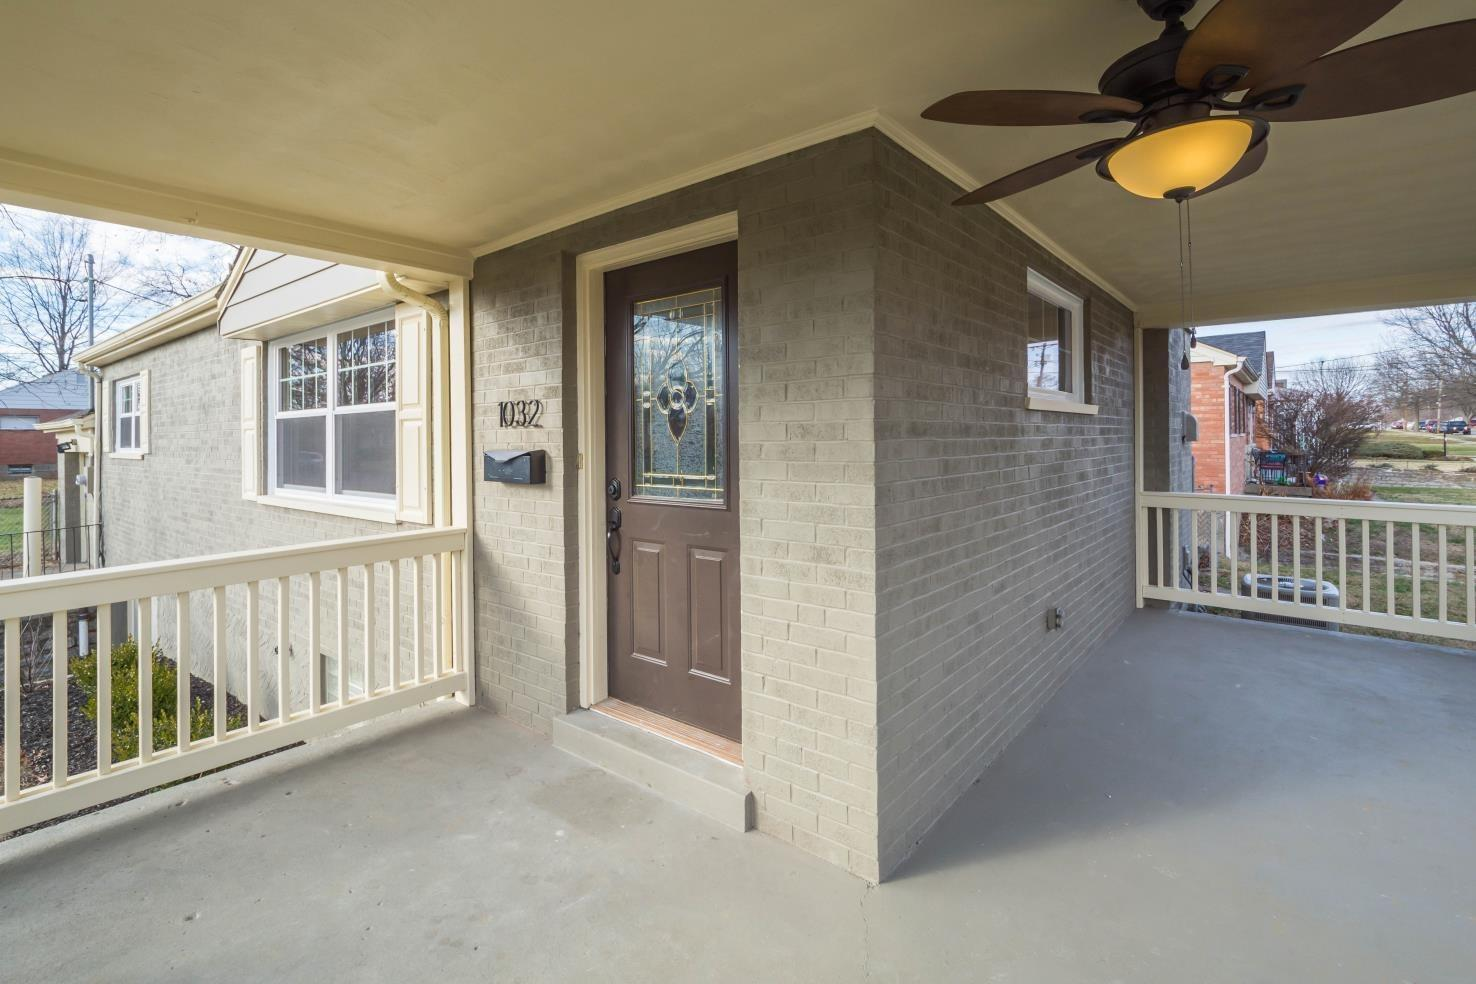 Photo 3 for 1032 Archland Dr College Hill, OH 45224